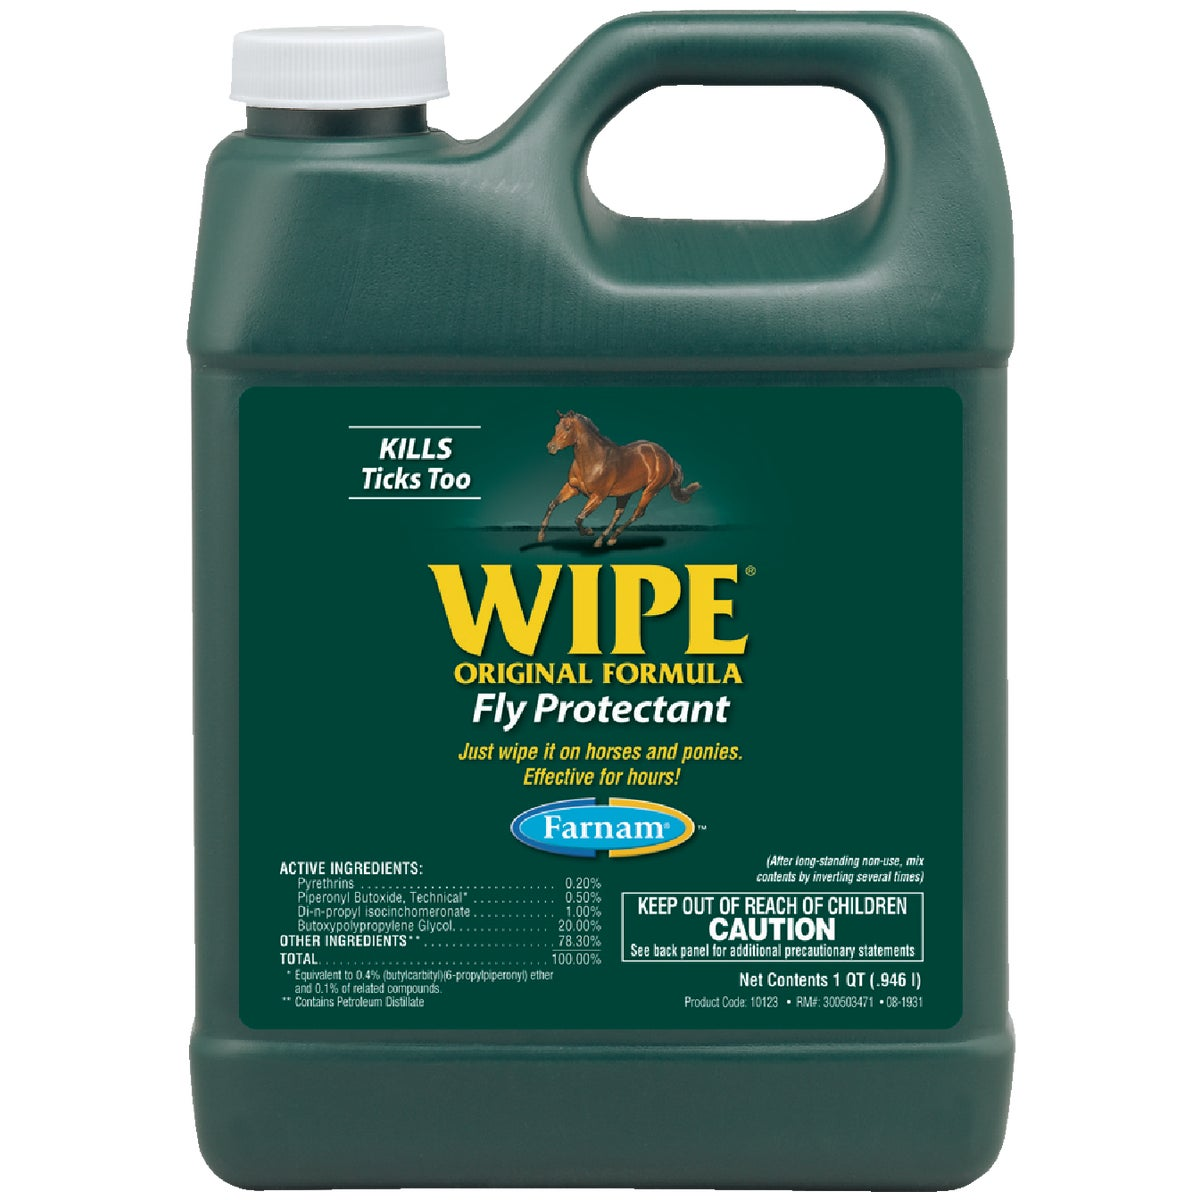 EQUINE FLY SPRAY - 10123 by Farnam Central Life